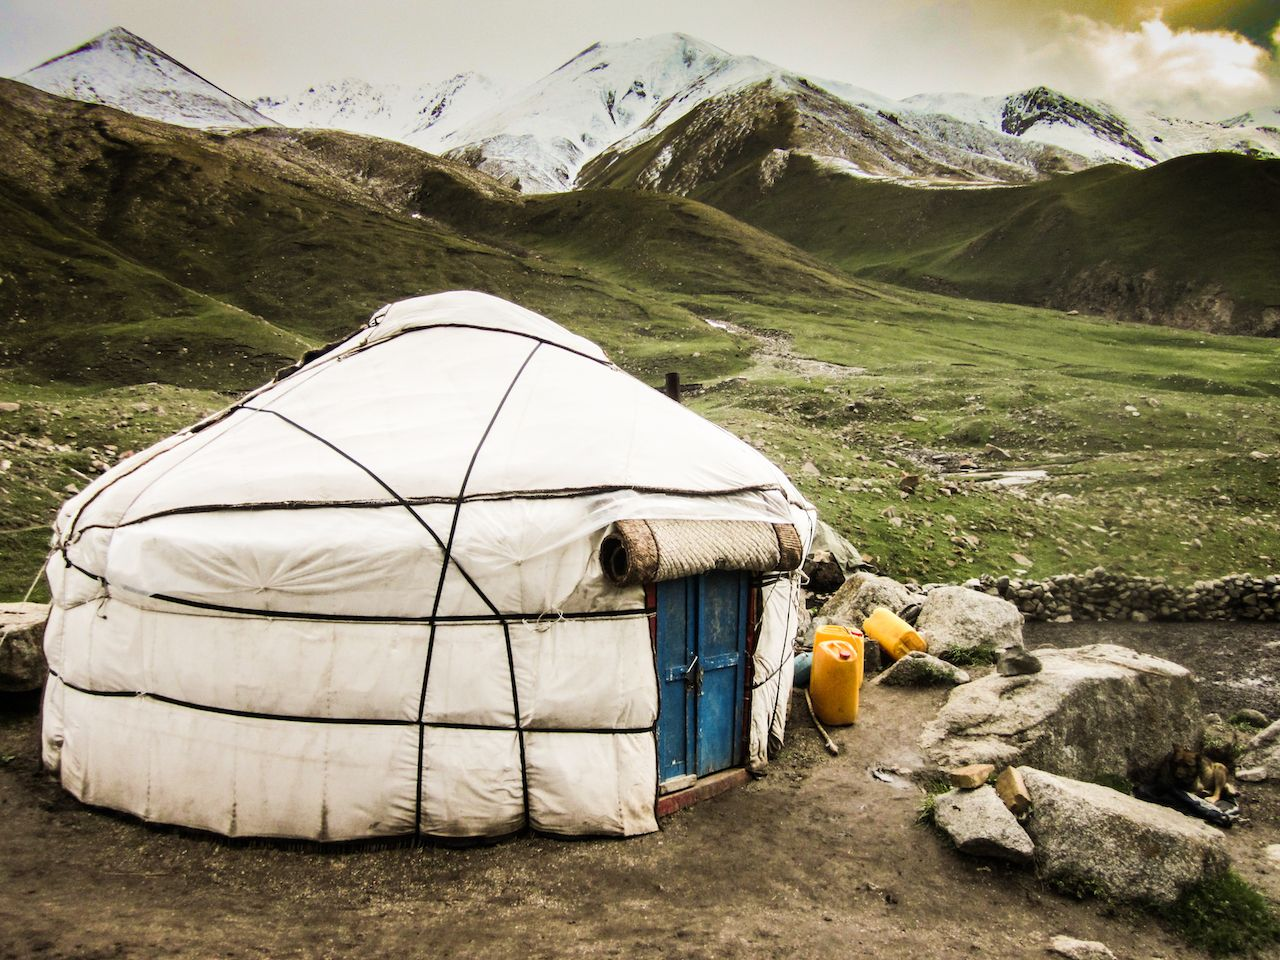 A yurt in Central Asia